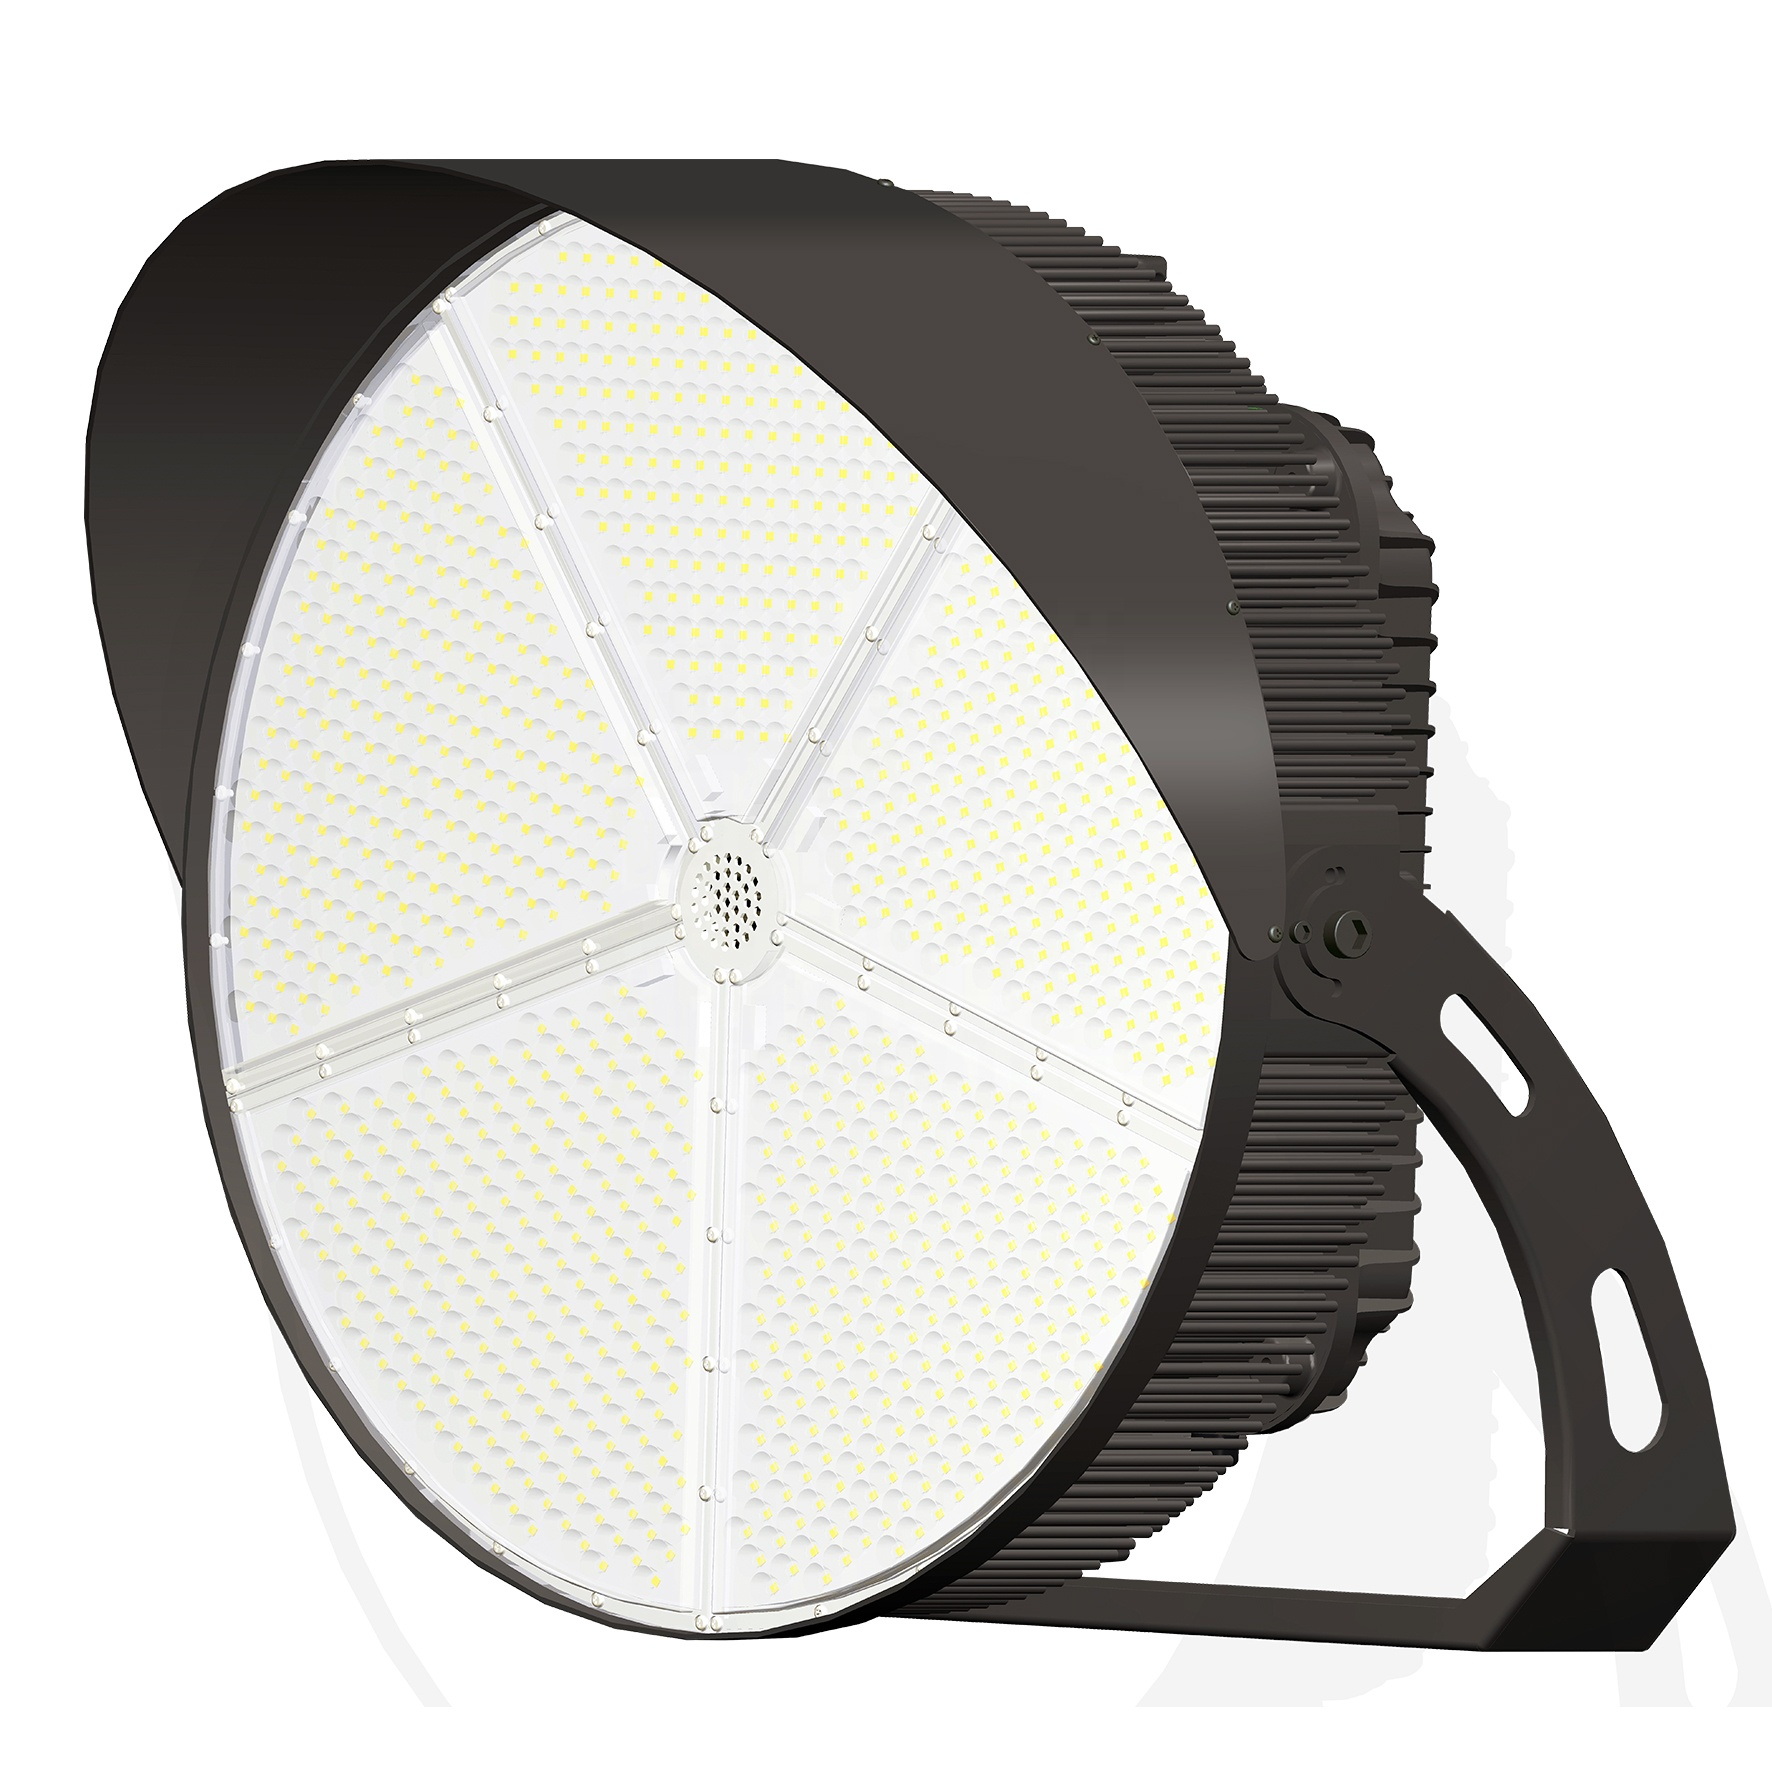 150LM/W UL cUL Top Quality 800w light <strong>flood</strong> led 400w